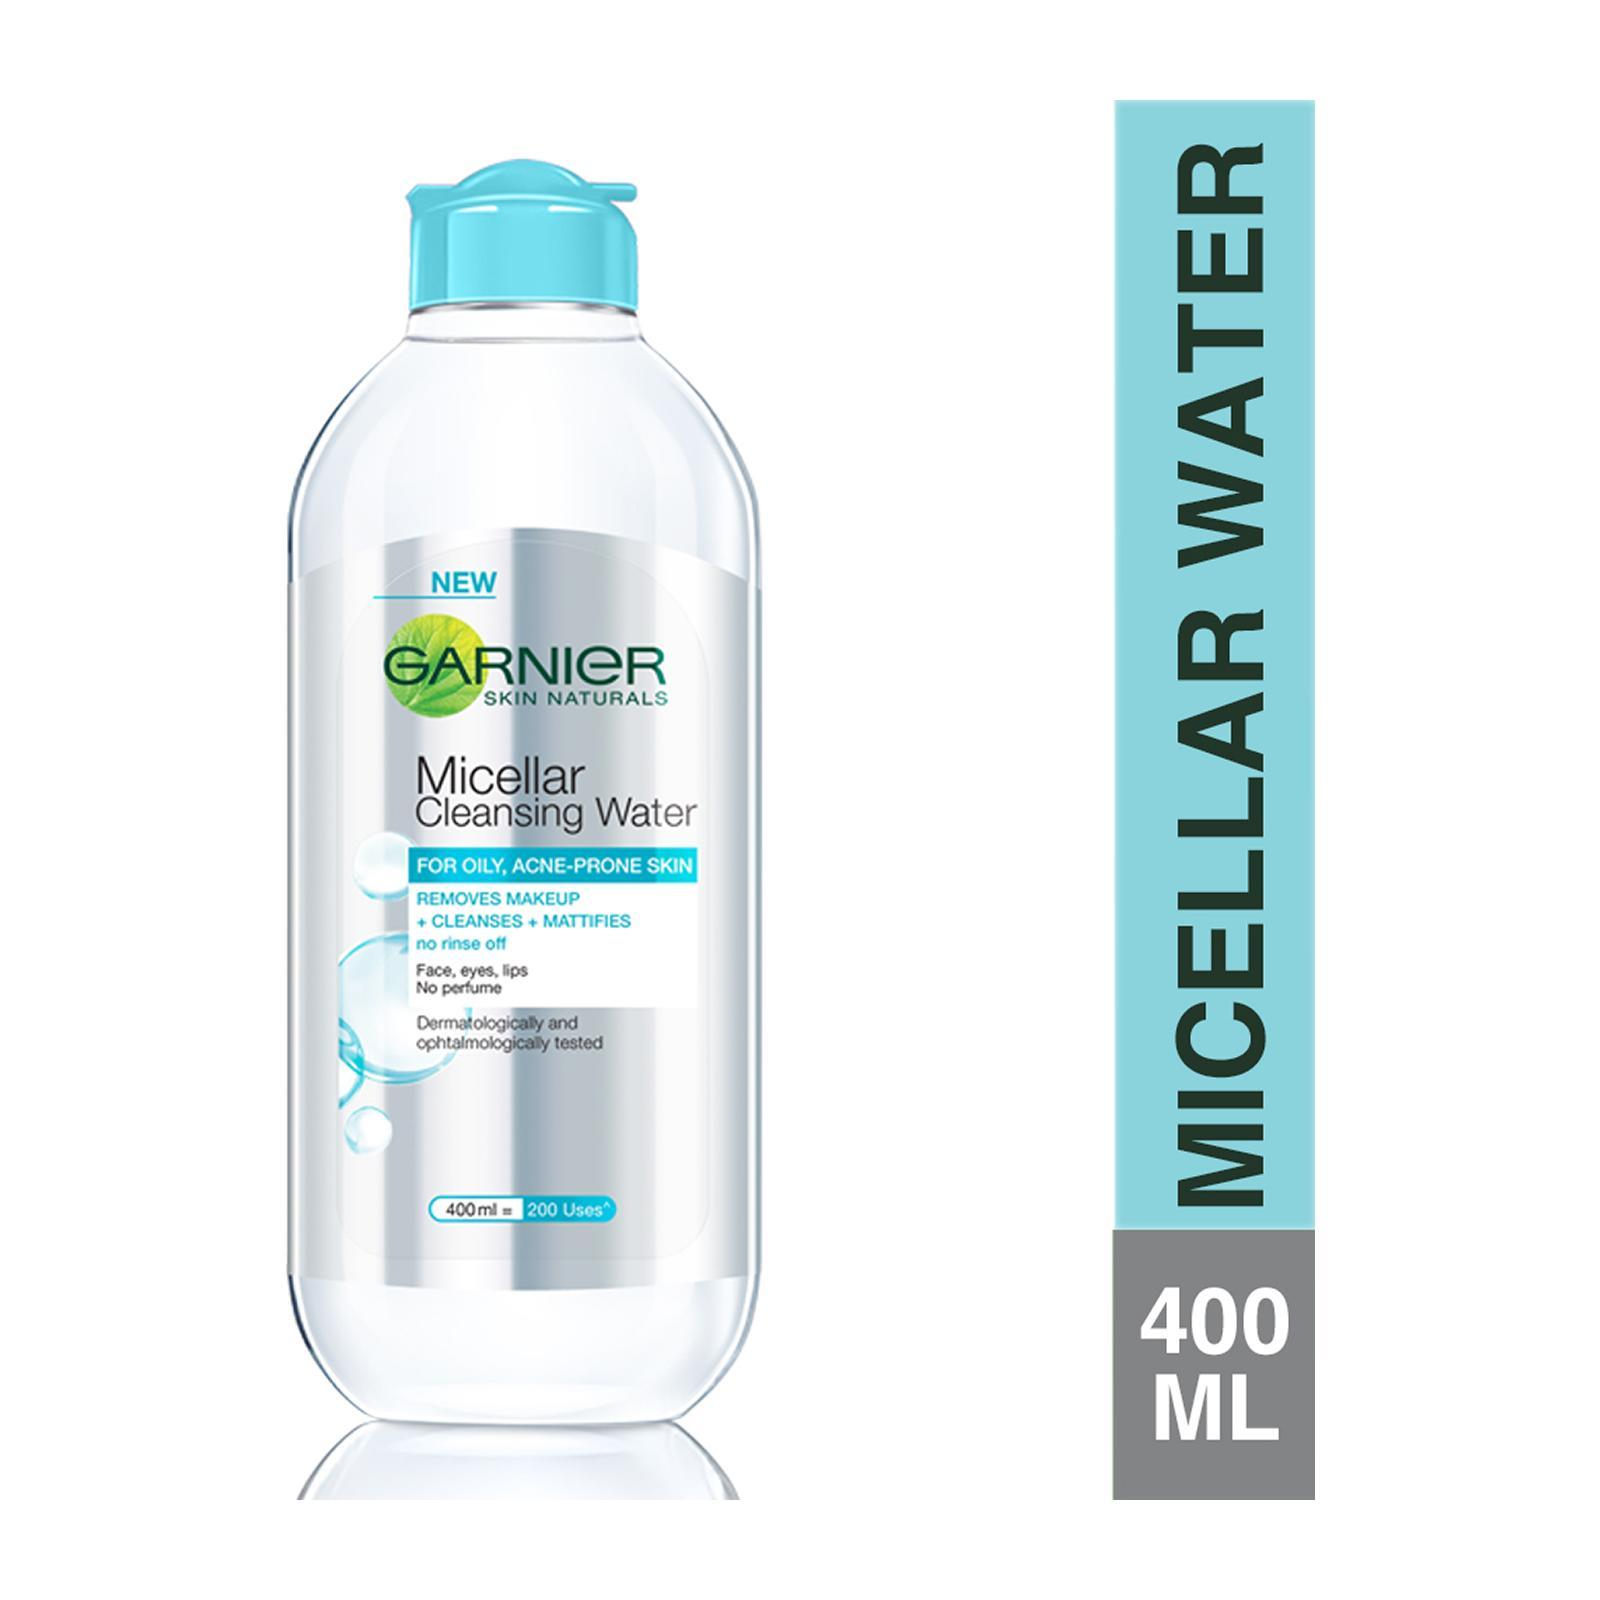 Garnier Micellar CleansIng Water Pure Active Light Blue